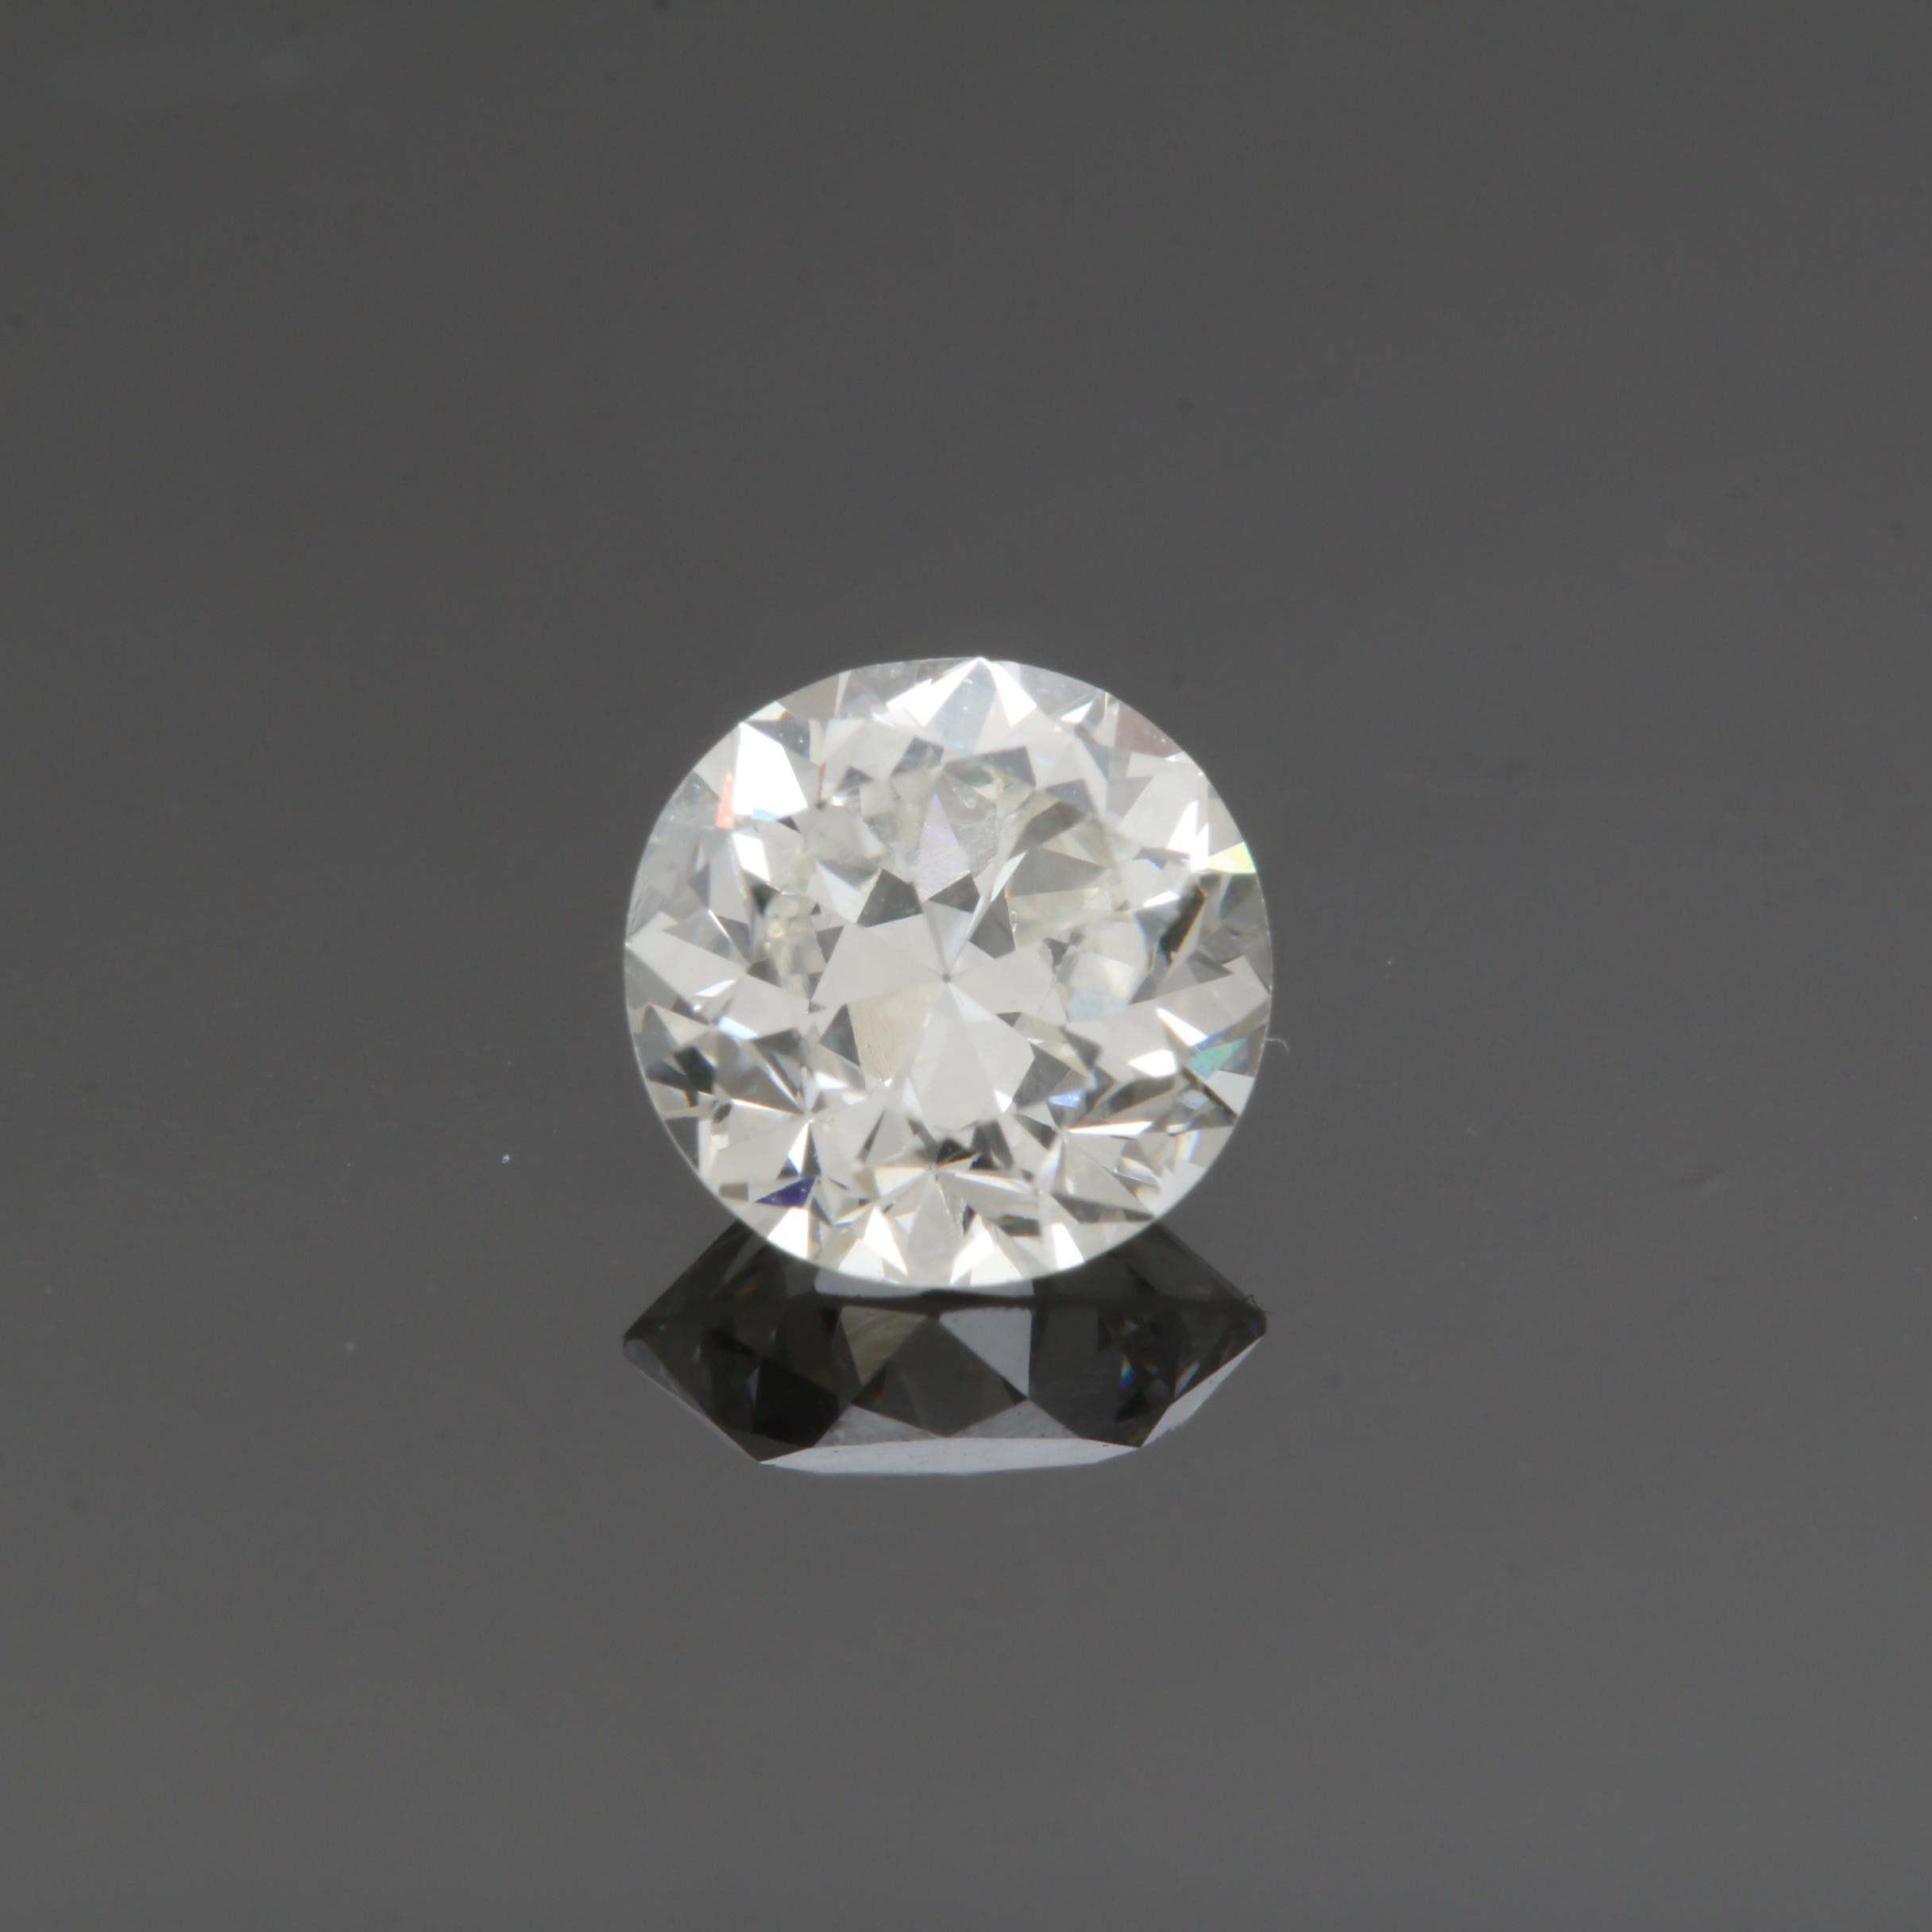 Loose 0.52 CT Diamond Including GIA Report 2175996113